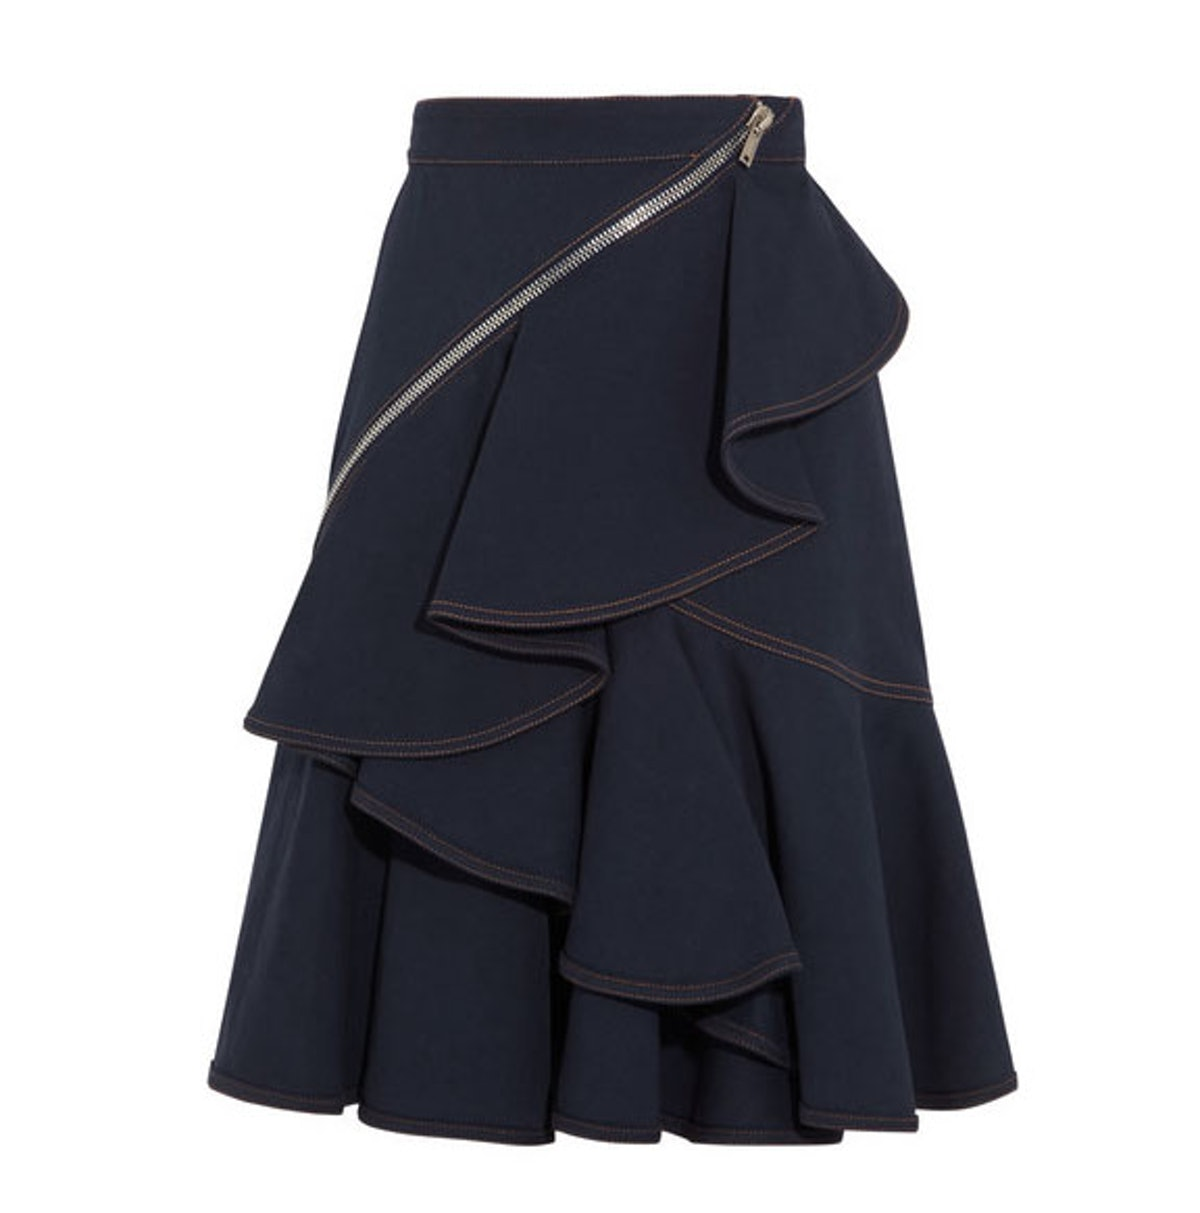 Givenchy Zip Skirt